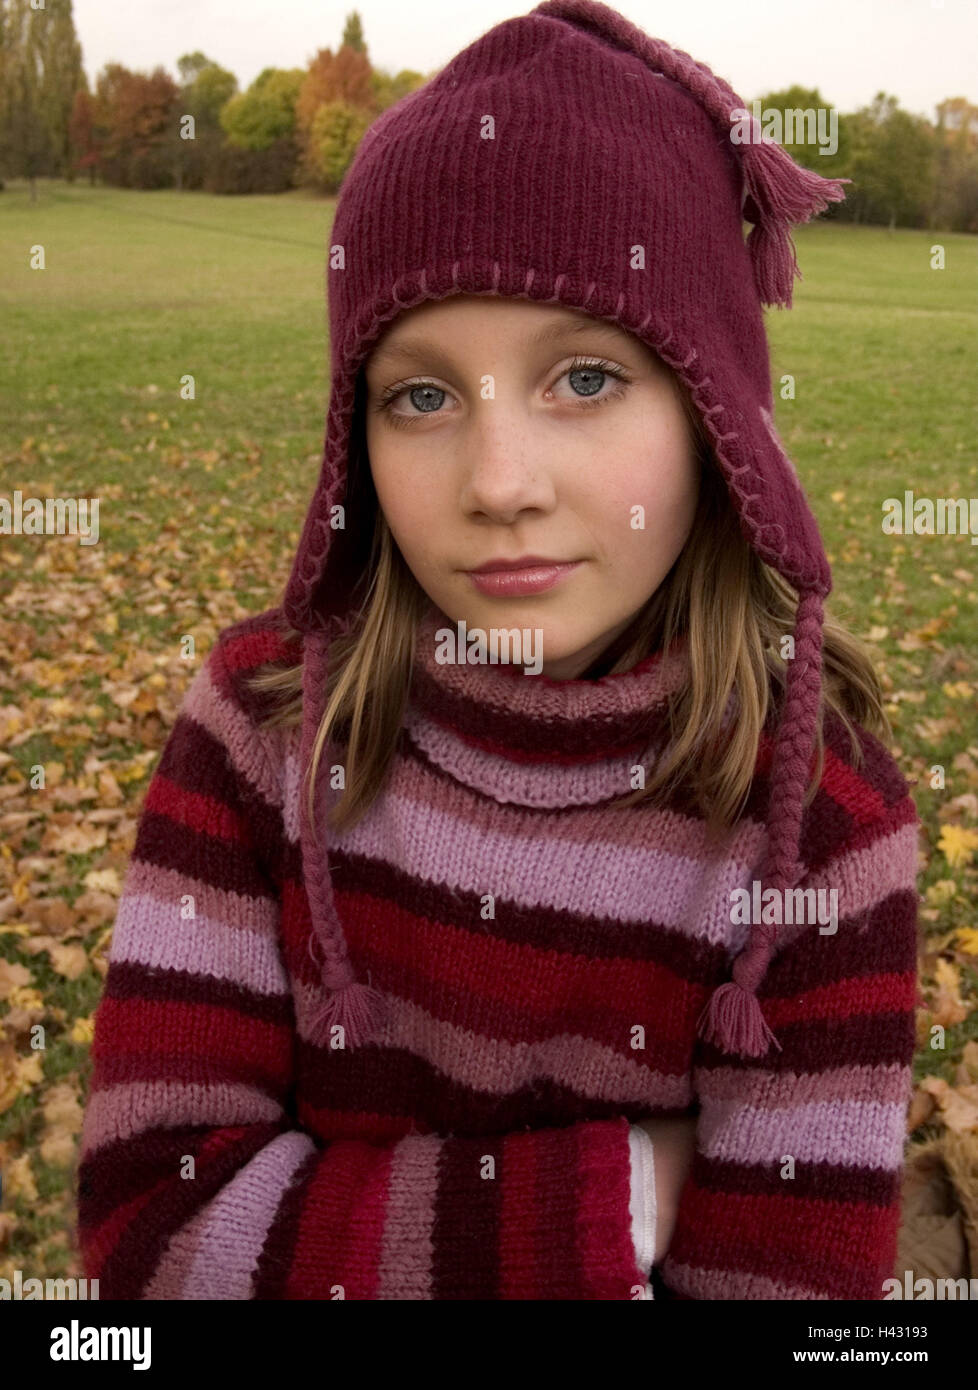 Girls, rope sweaters, cap,  Look camera, portrait, autumn,   Series, 10-15 years, teenager girls, teenagers, blond, - Stock Image